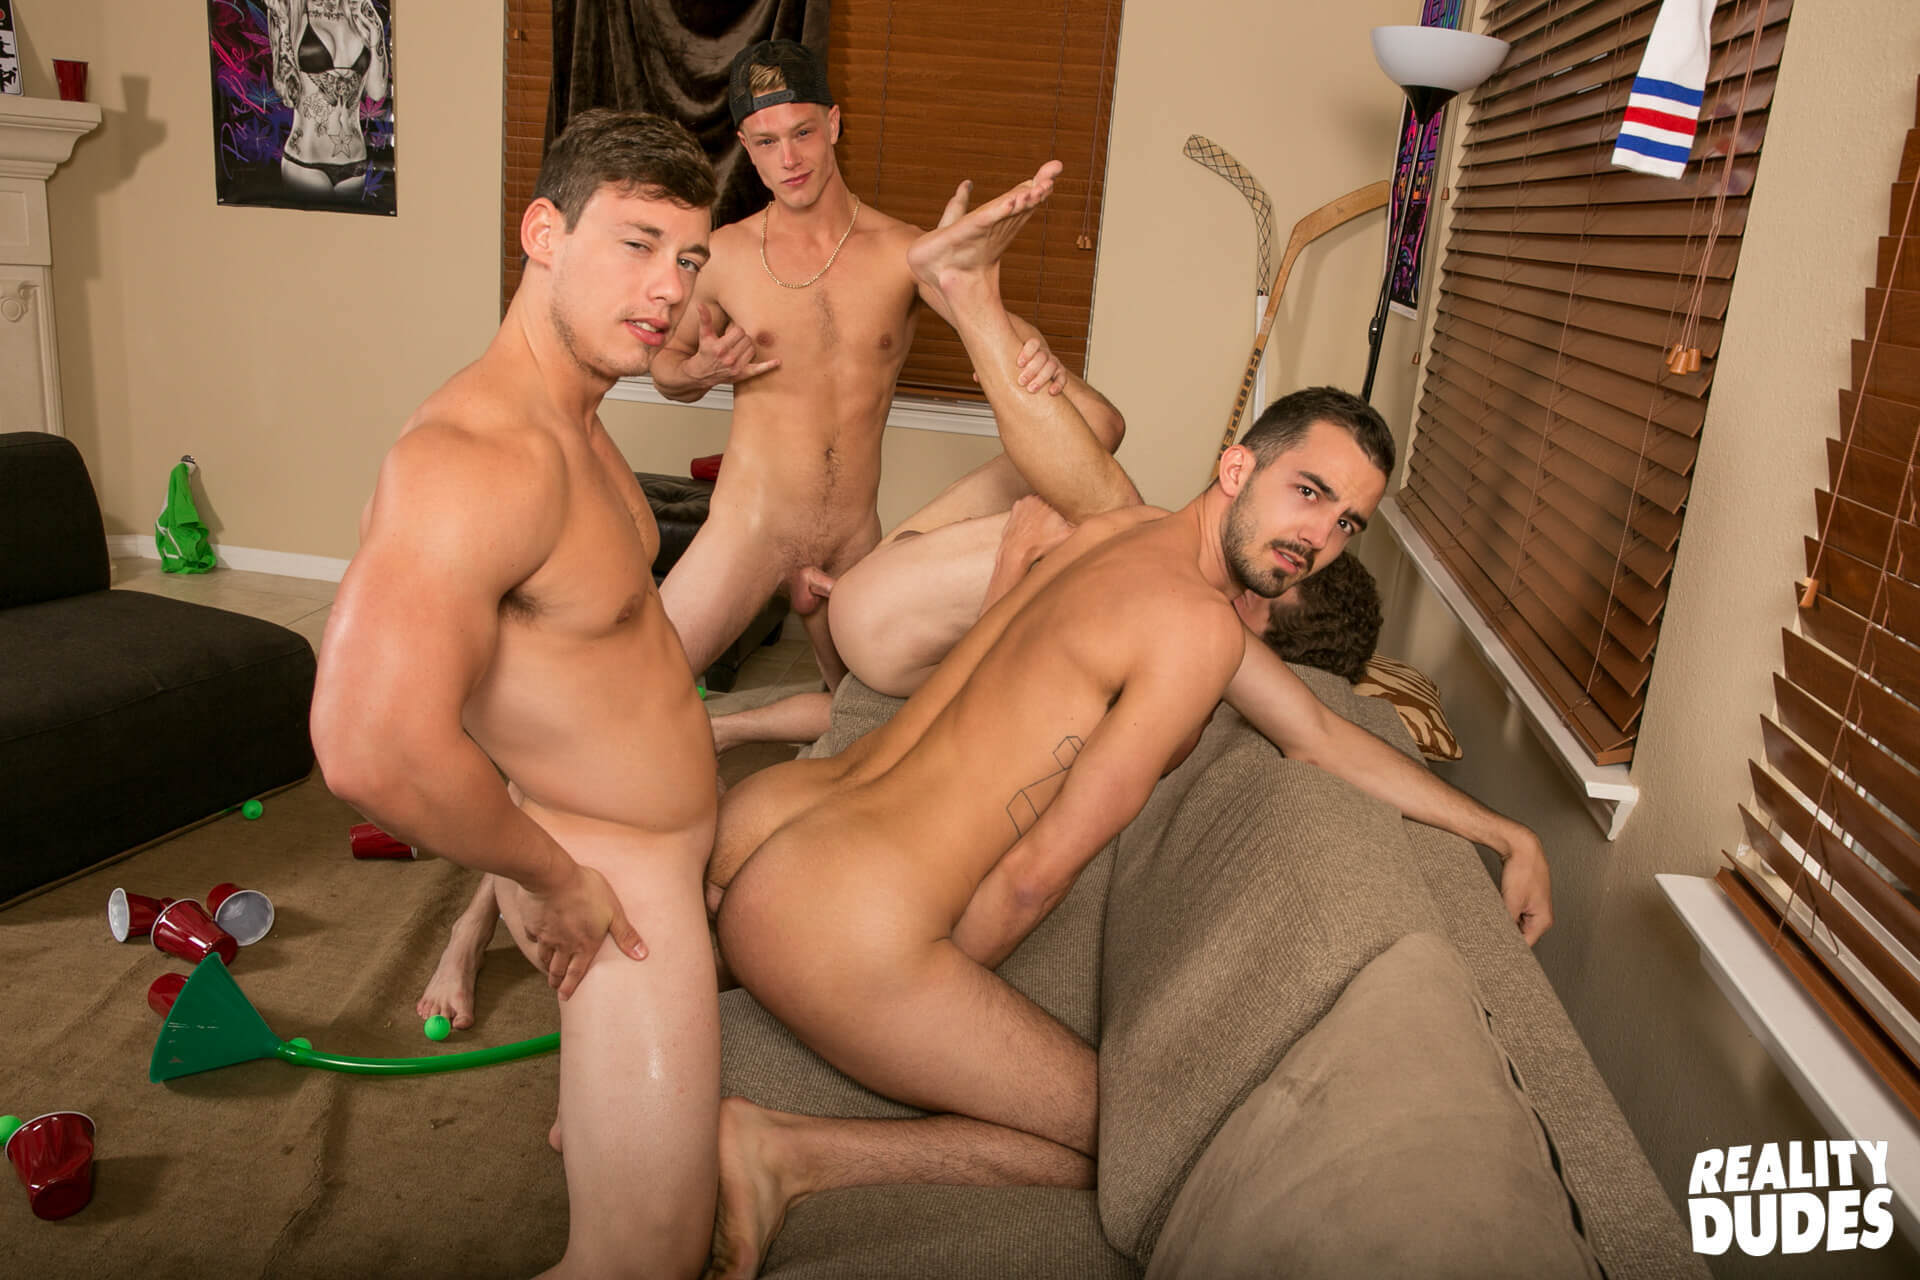 reality dudes dick dorm banana split gay porn blog image 41